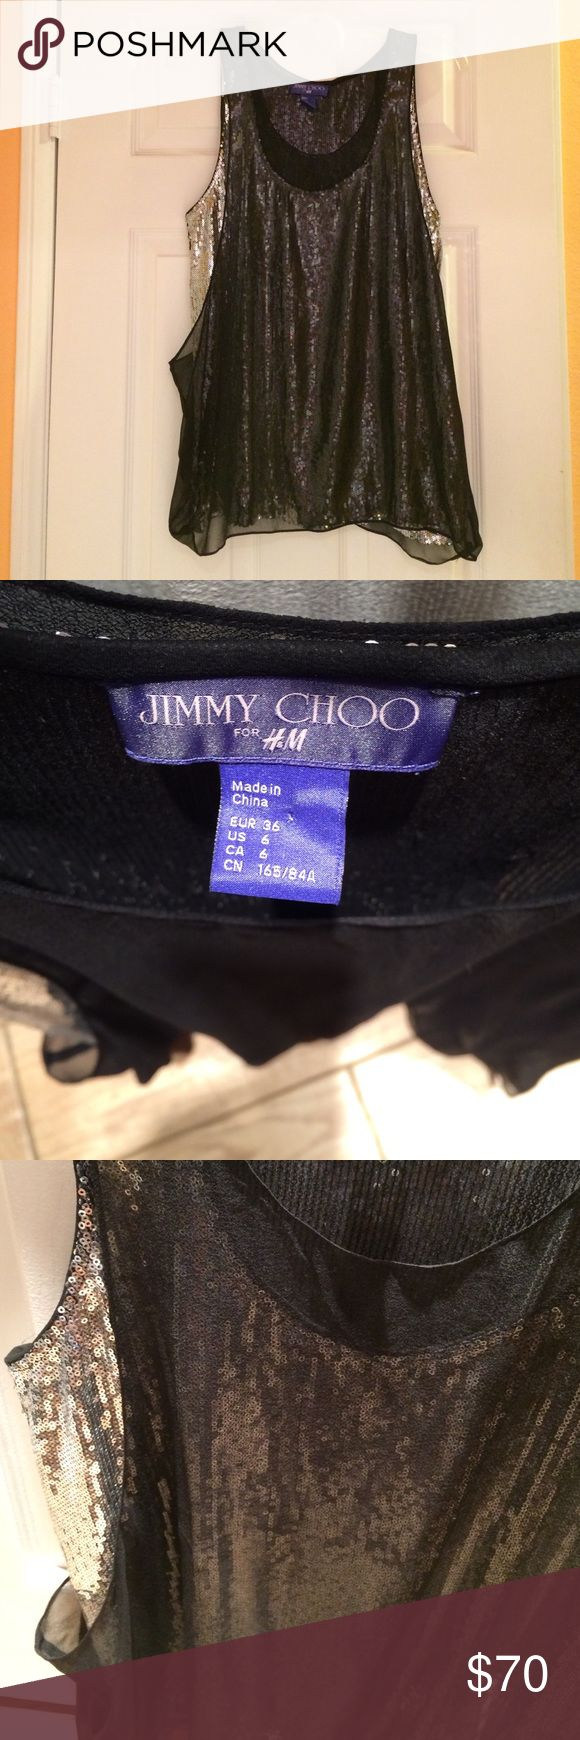 Shiny sequined black & silver top Jimmy Choo for H&M black silver silk top, new Jimmy Choo Tops Blouses